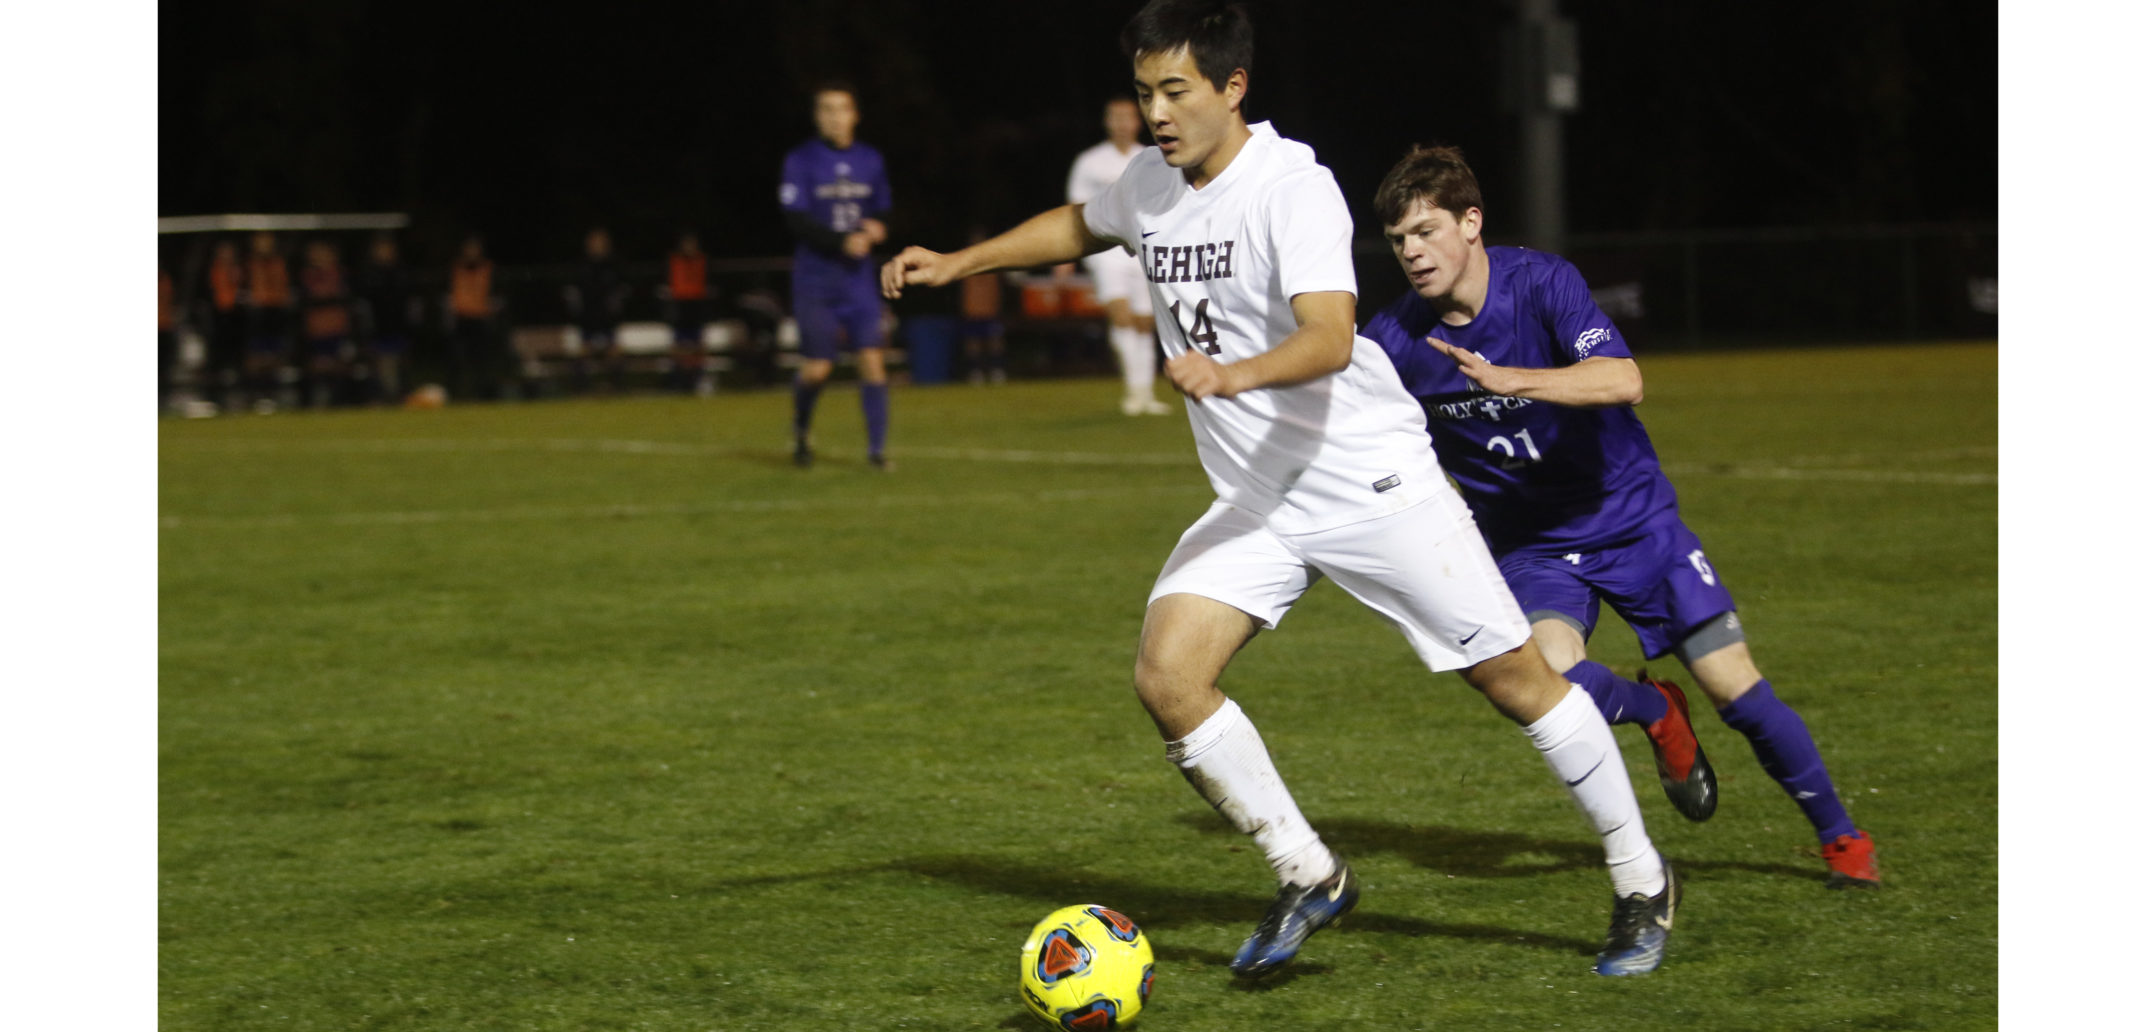 Senior midfielder Tatsu Otani is attacked from behind during the Patriot League quarterfinal game against Holy Cross at Ulrich Sports Complex on Tuesday night. Lehigh lost in a 3-0 shutout. All the goals were scored in the first 12 minutes of the game. (Alexis McGowan/ B&W Staff)